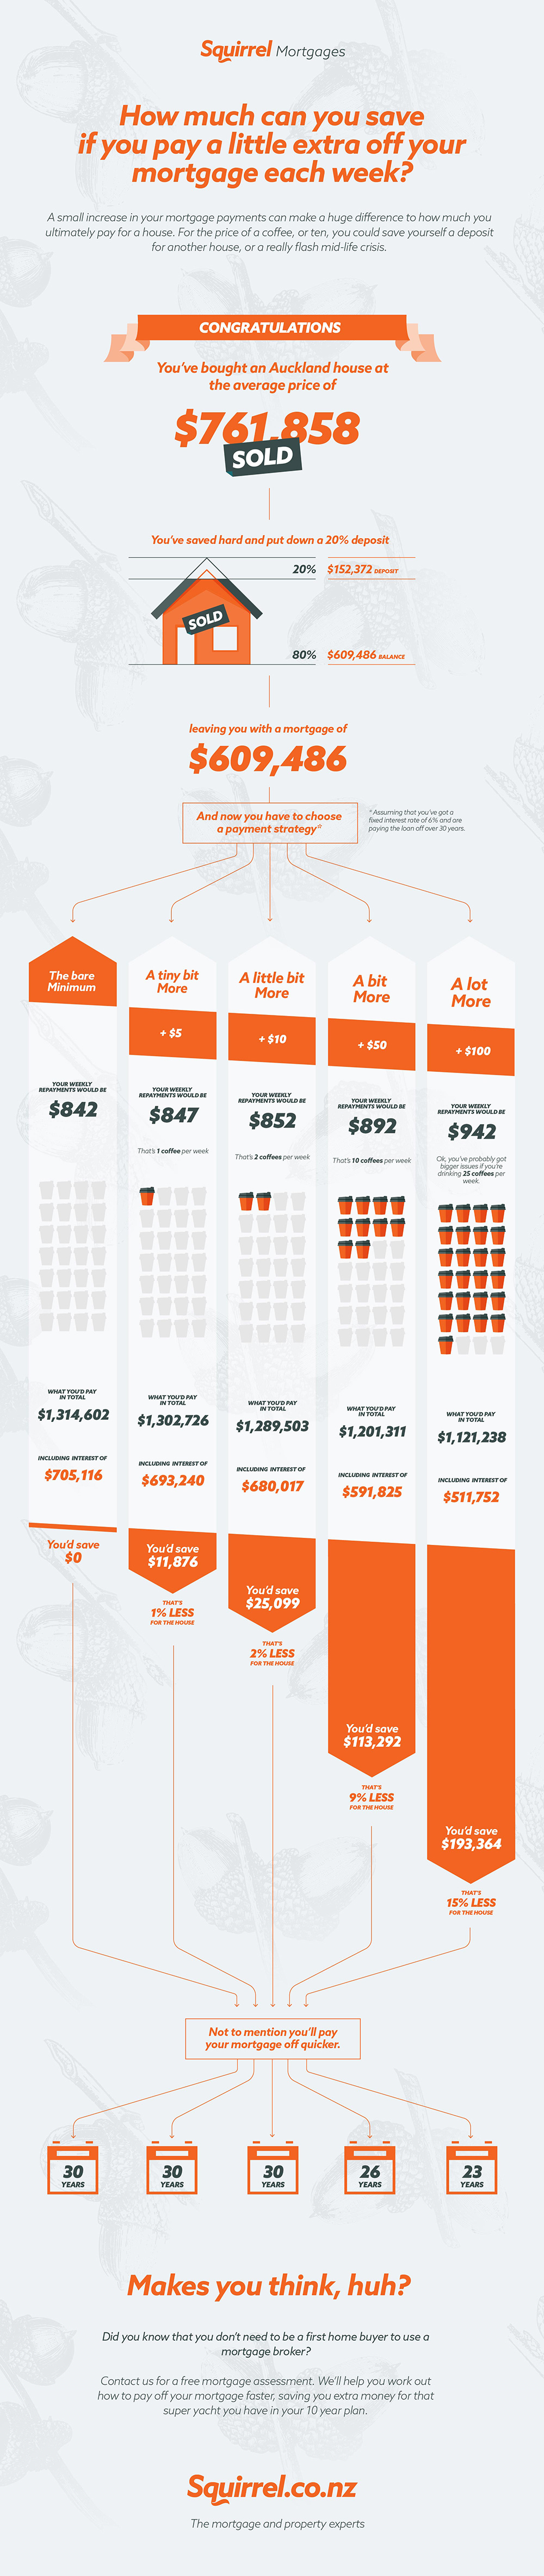 Infographic on how much you can save